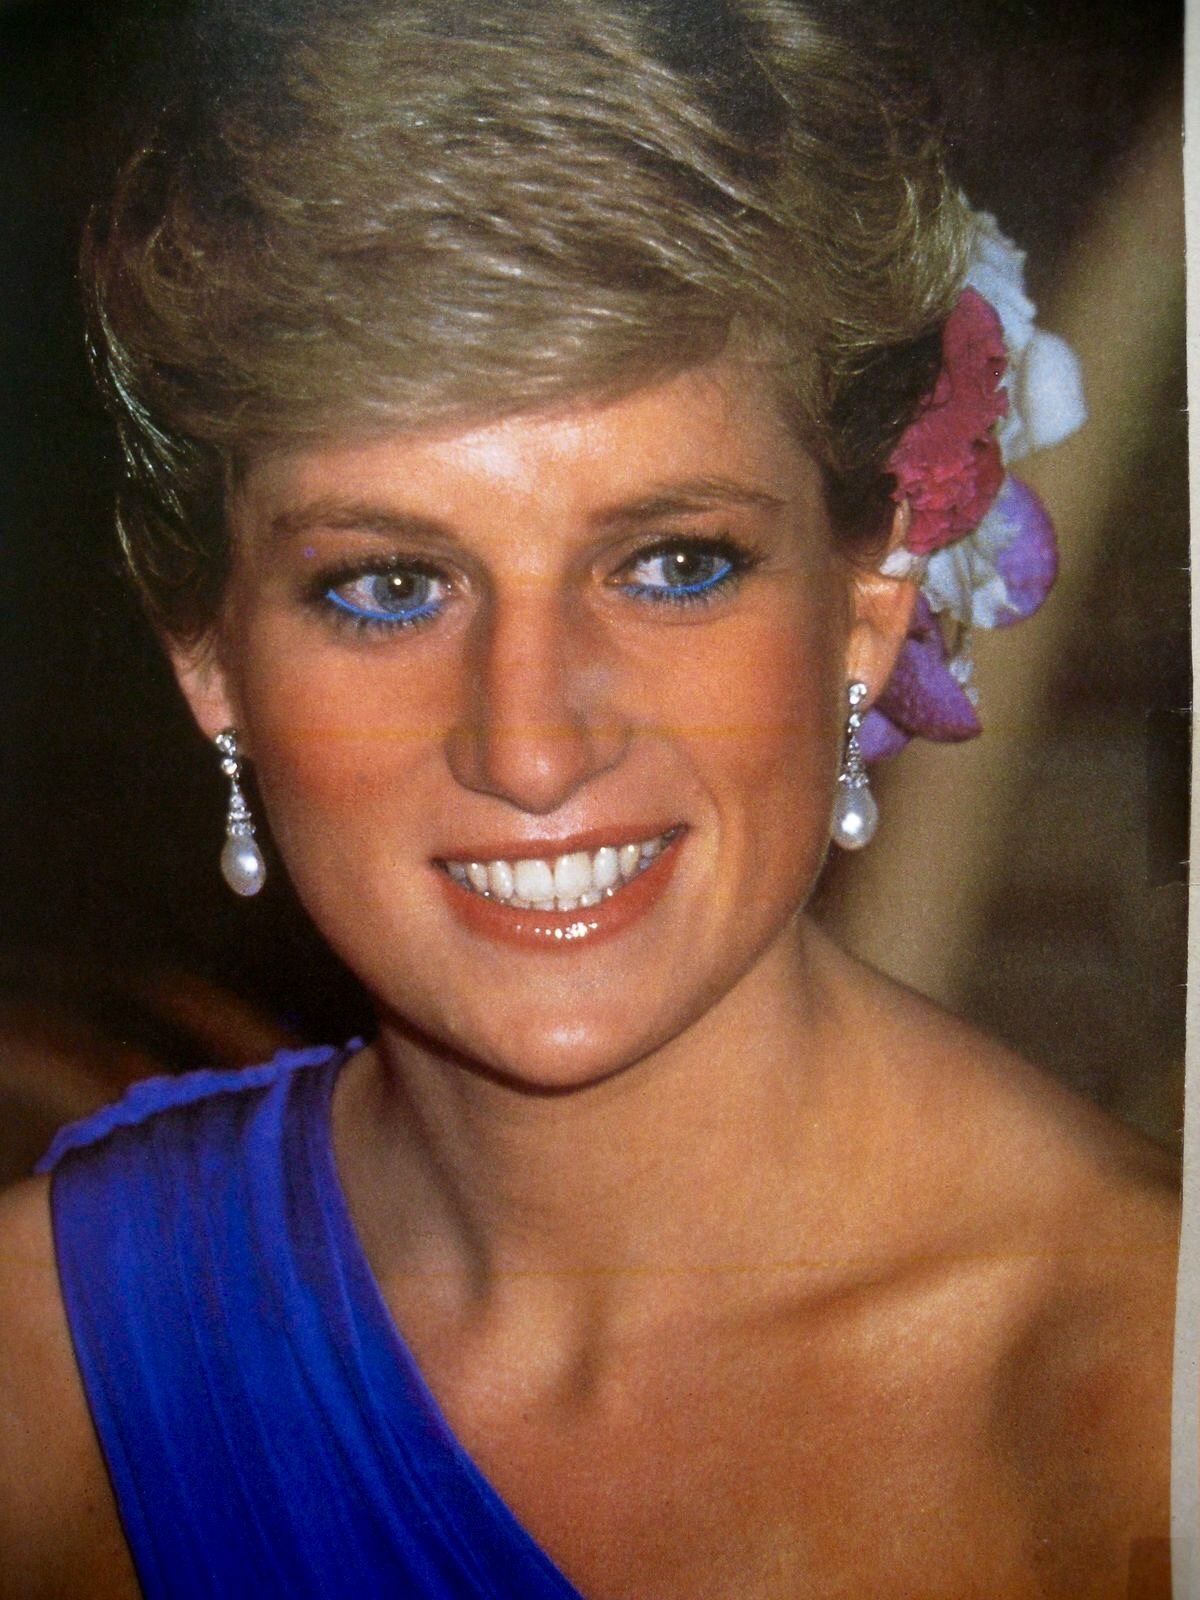 Princess Diana Fashion and Style Icon Photo C GETTY IMAGES 0089